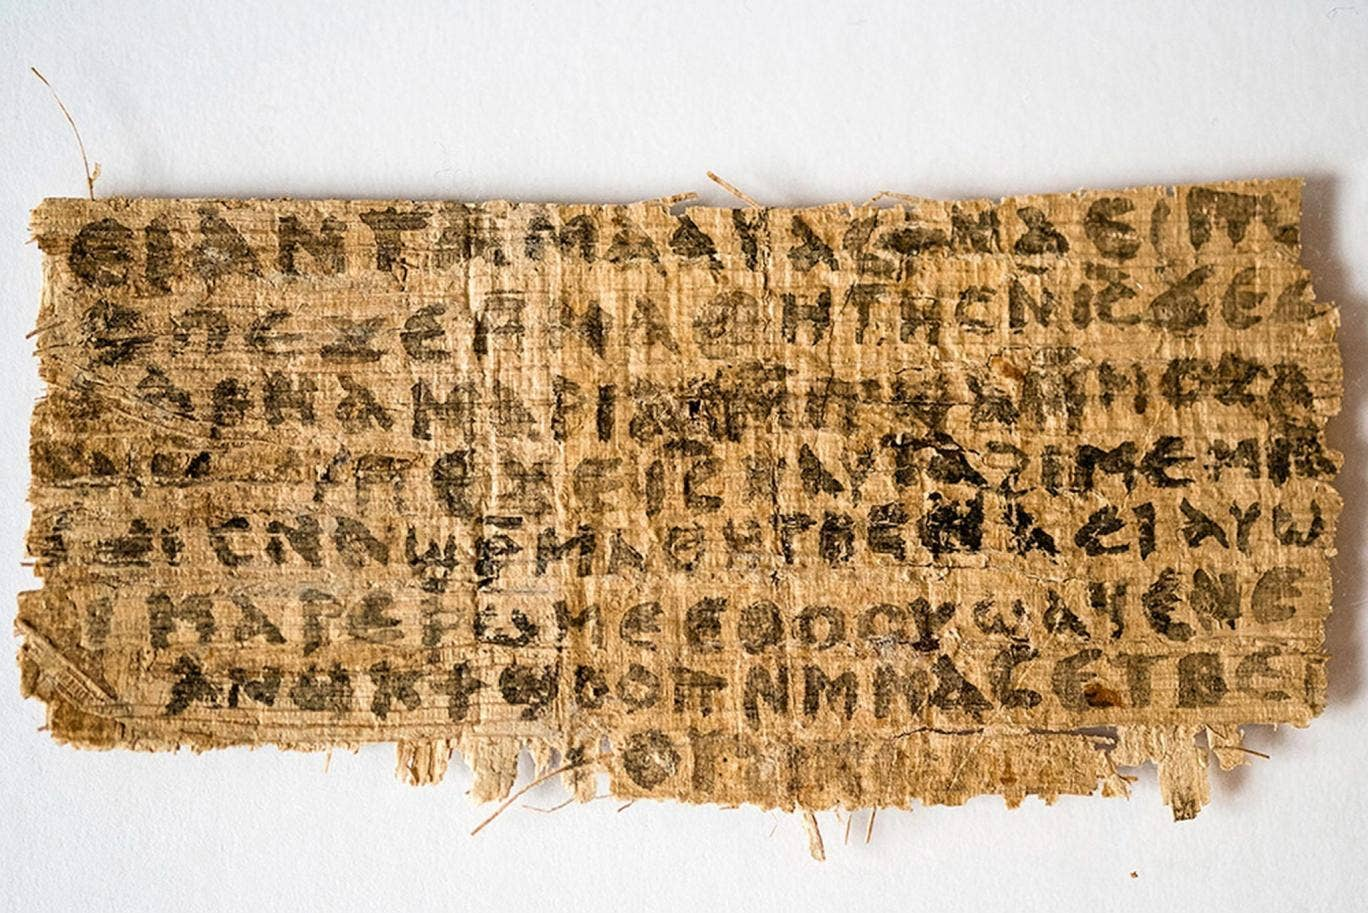 The fragment is written on papyrus in the Coptic alphabet and new radiocarbon dating suggests it was written in AD741